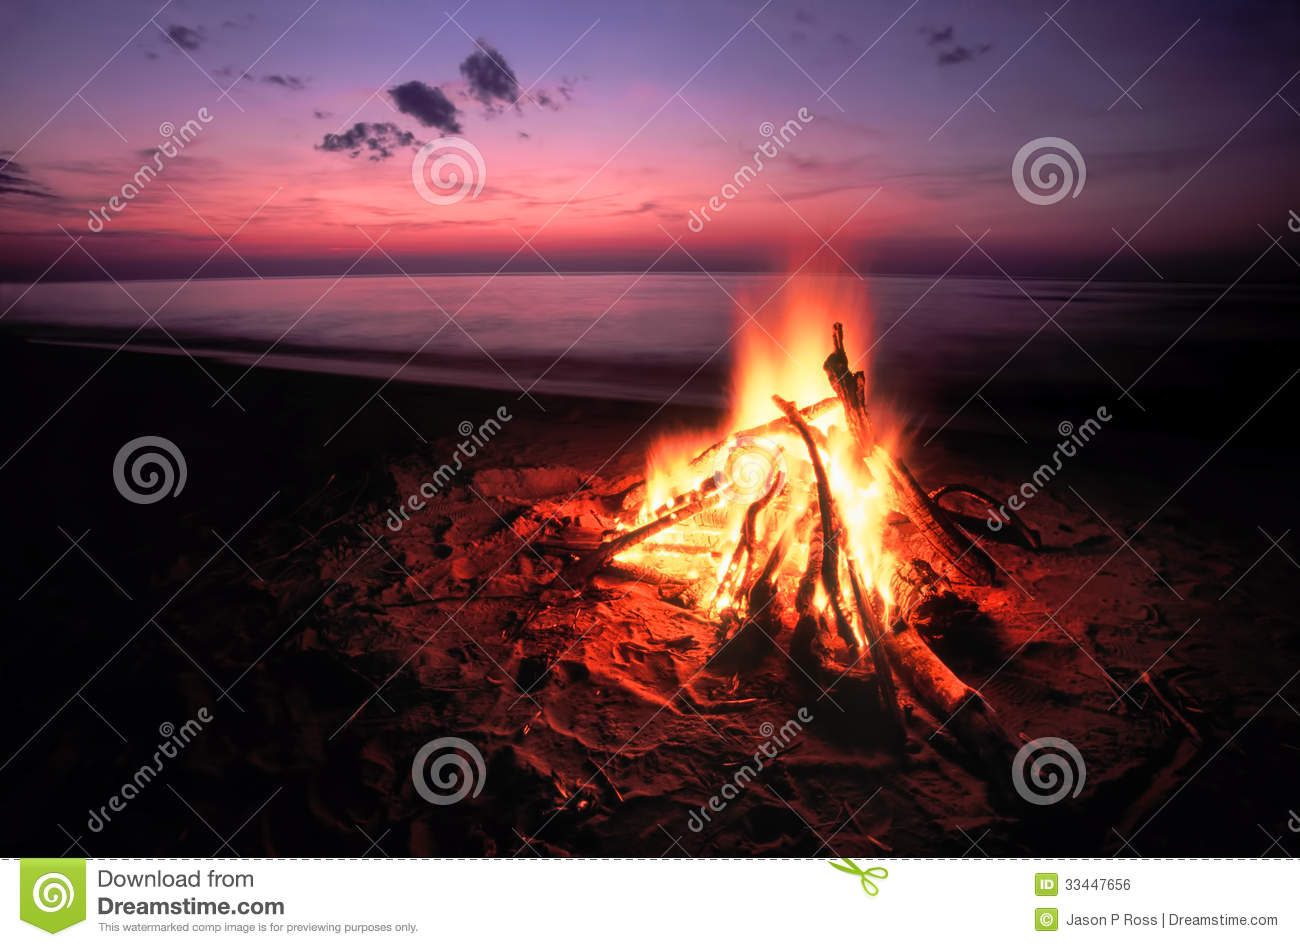 Royalty Free Stock Image Beach C fire Lake Superior Blazing Sunset Along Beautiful Northern Michigan Image33447656 moreover Stock Photography Cala Fornells View Majorca Paguera Spain Image34910372 also 217014 likewise Royalty Free Stock Images Old Stone House Romantic Balcony Image26962499 further Royalty Free Stock Images Christmas Tree Ornaments Image17536579. on pine tree house plans